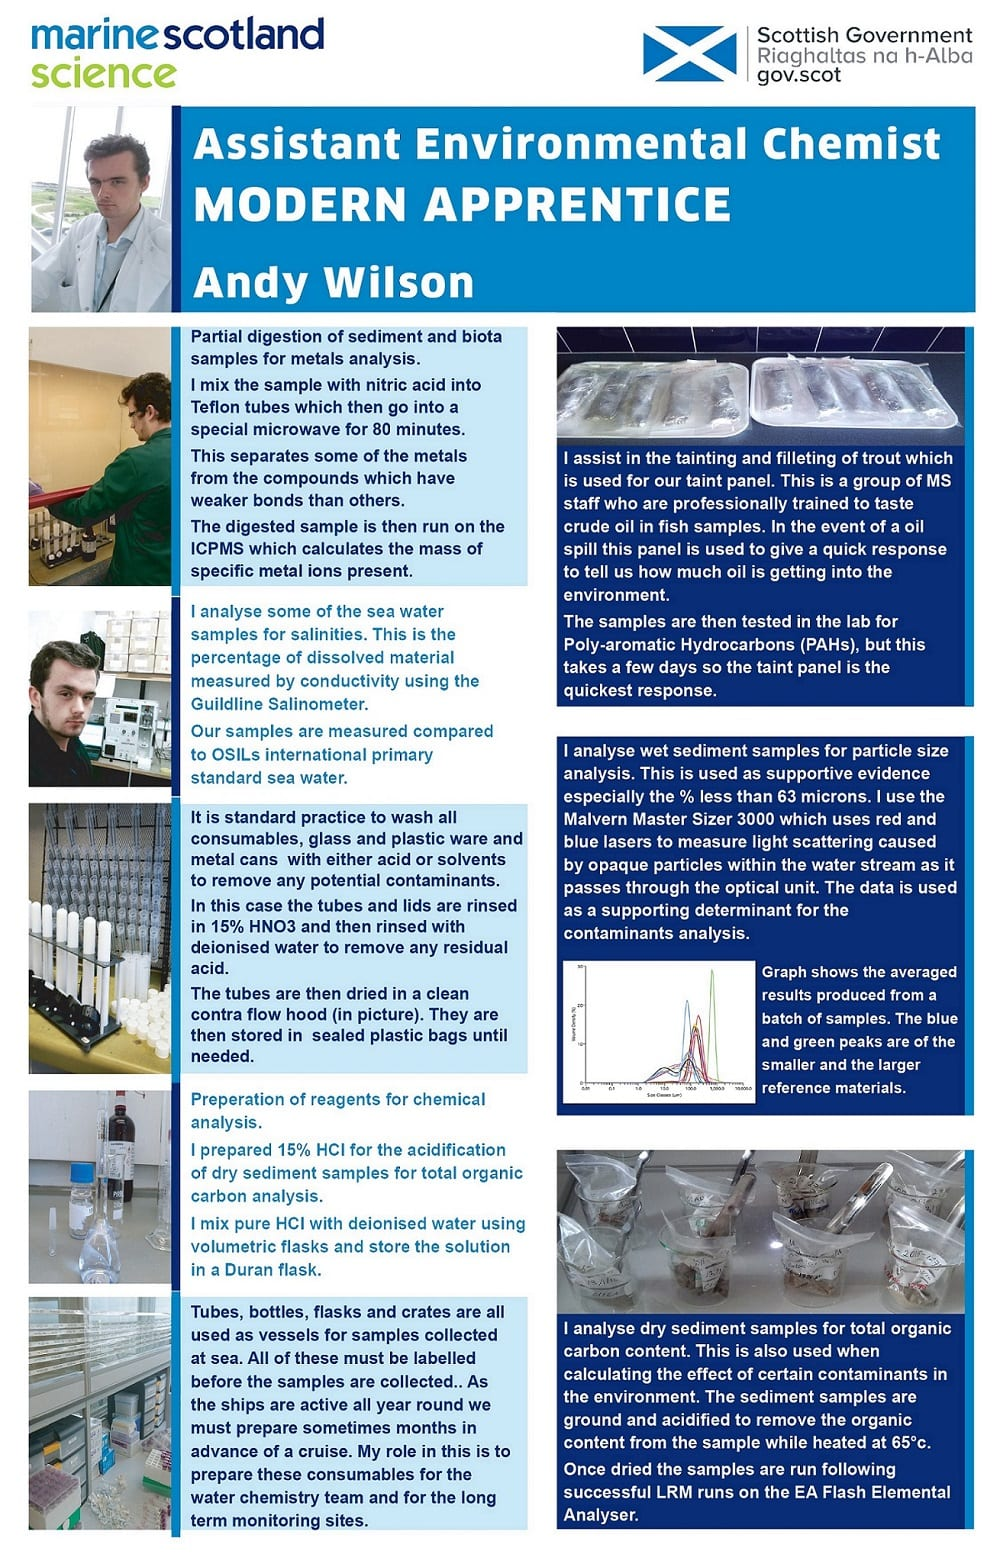 Andy Wilson Science in Government poster